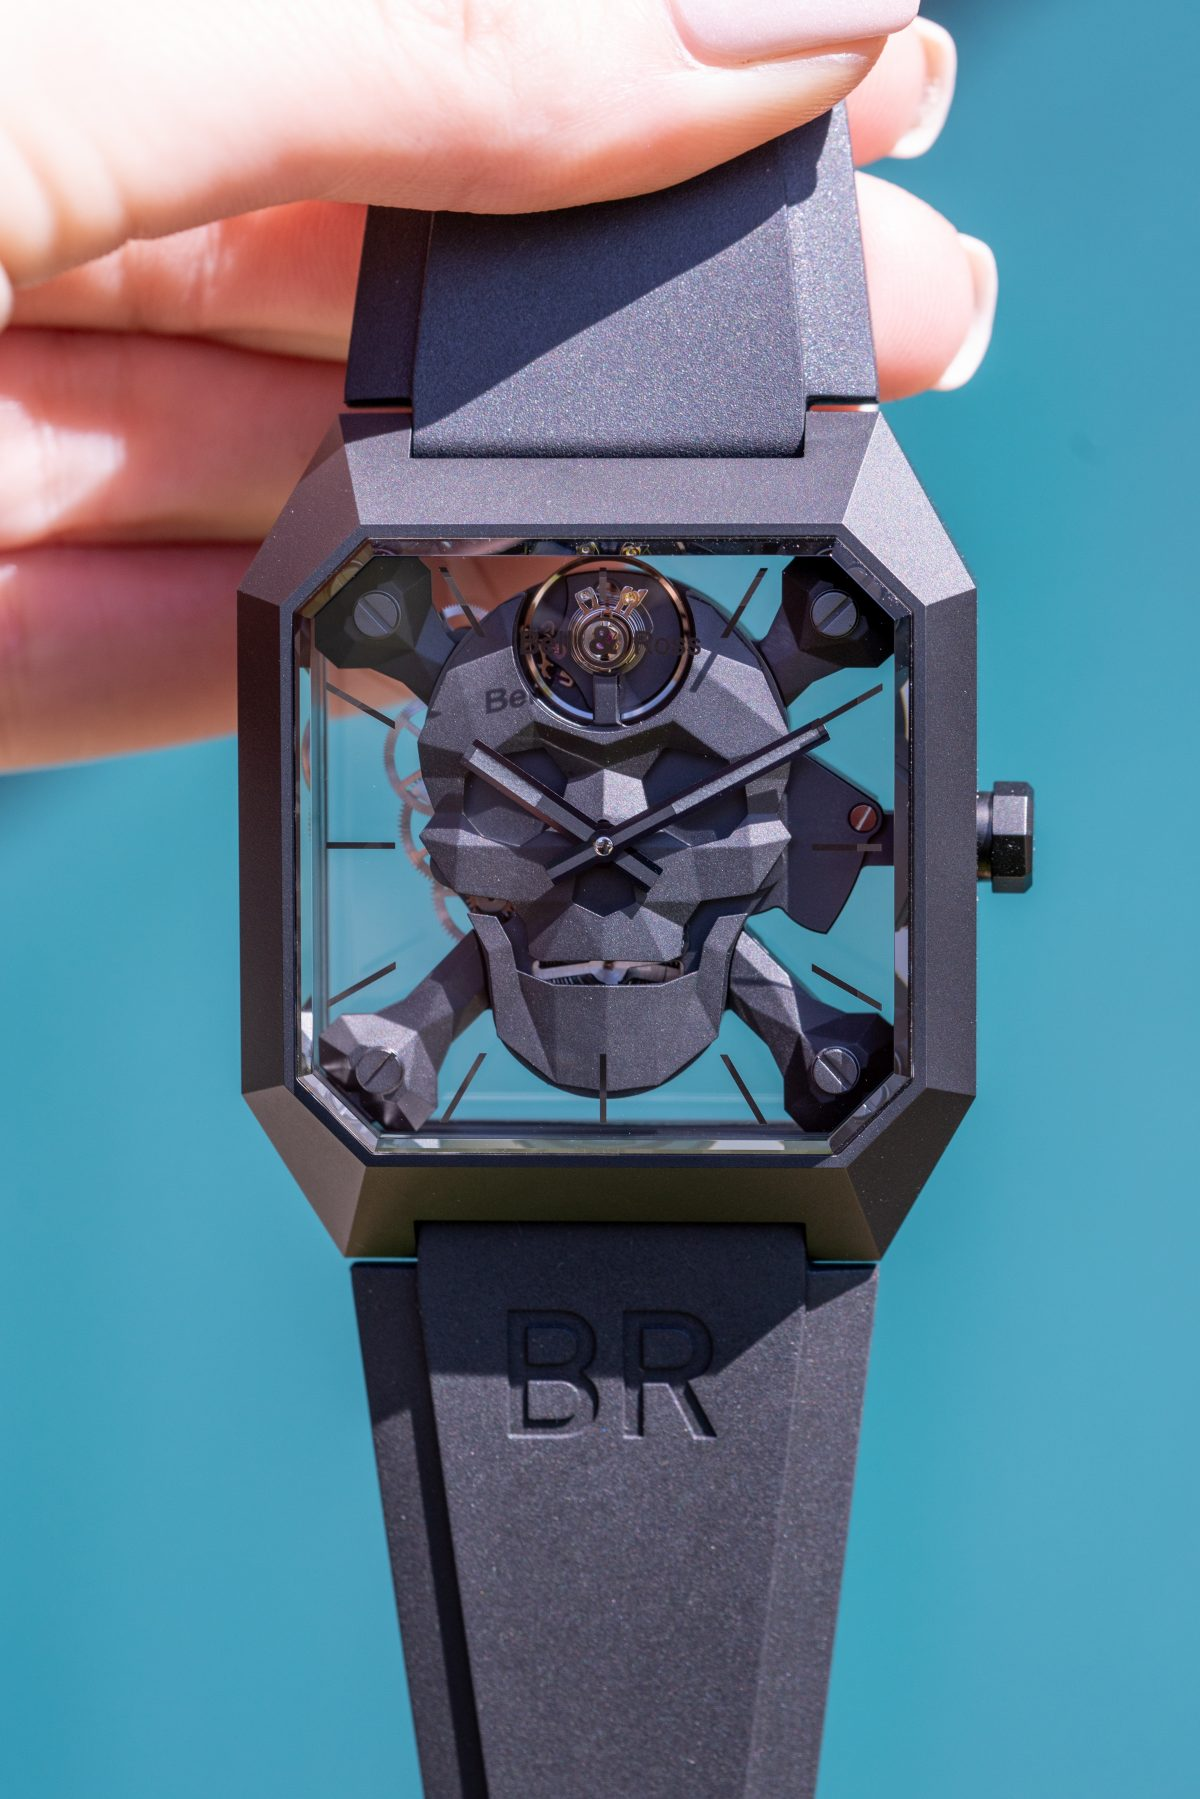 An Overview Of The Bell And Ross BR 01 Cyber Skull Wristwatch